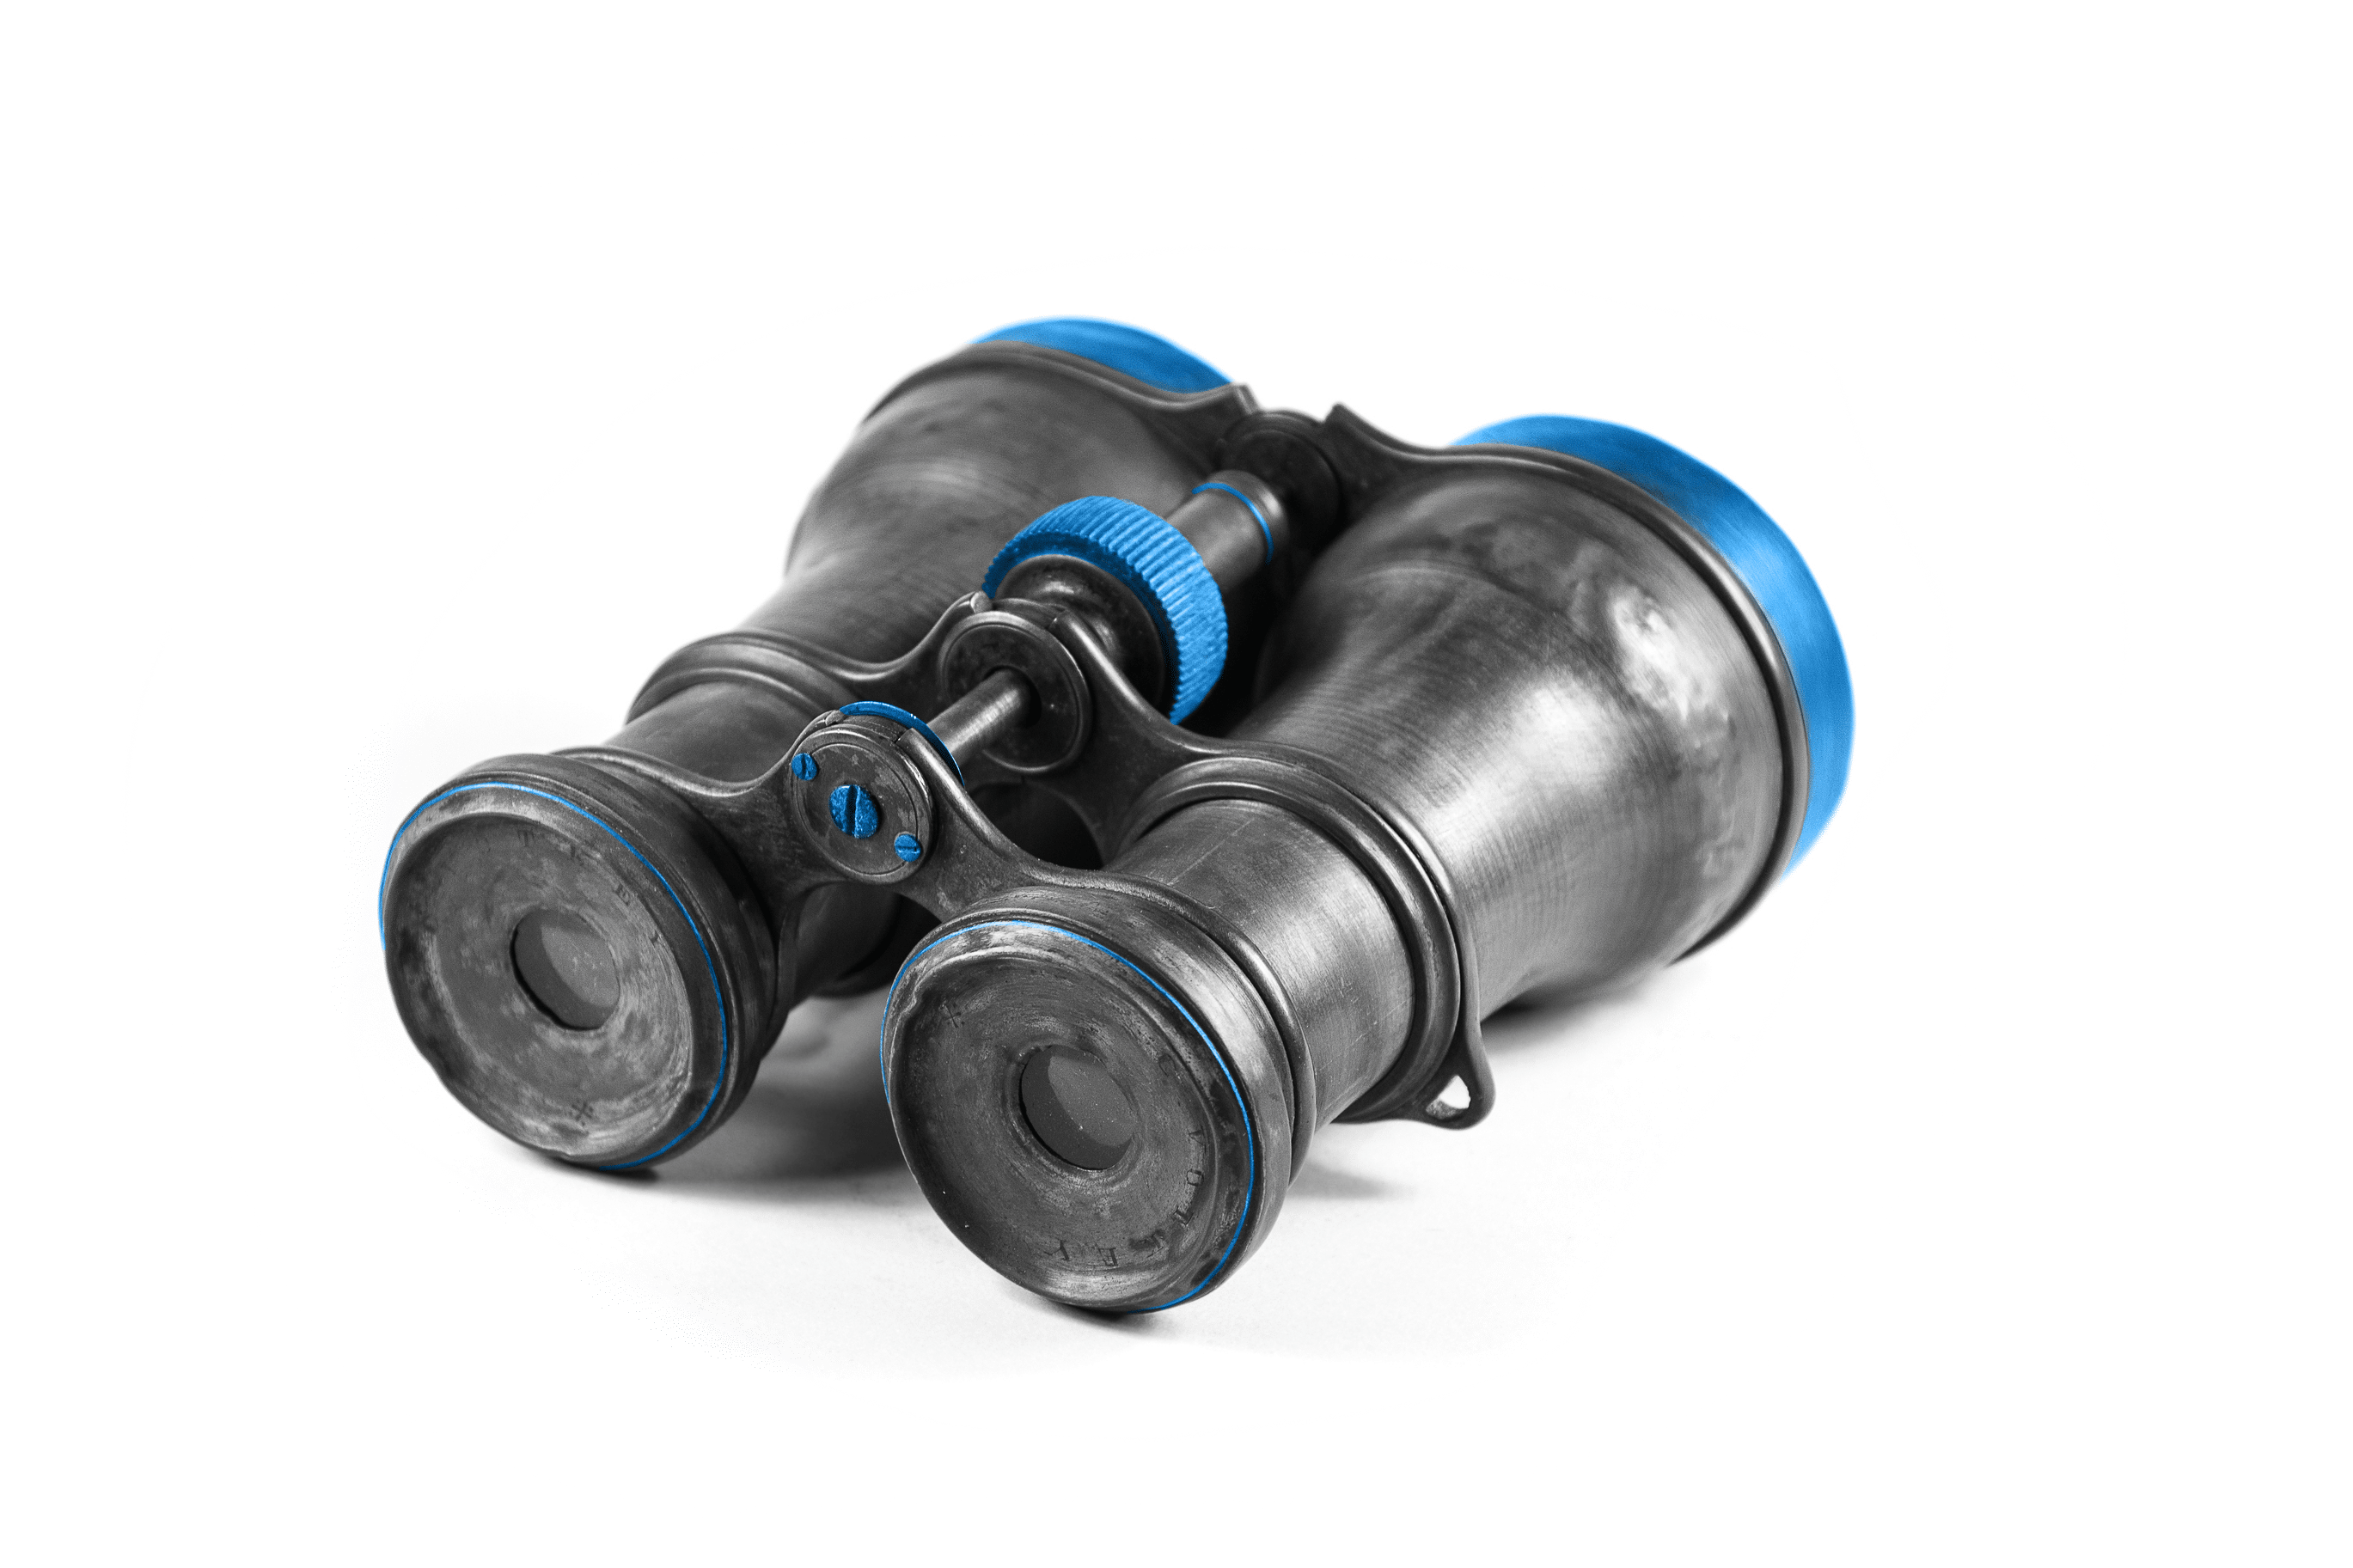 https://www.ims-expertservices.com/wp-content/uploads/2020/07/IMS-Binoculars2.png